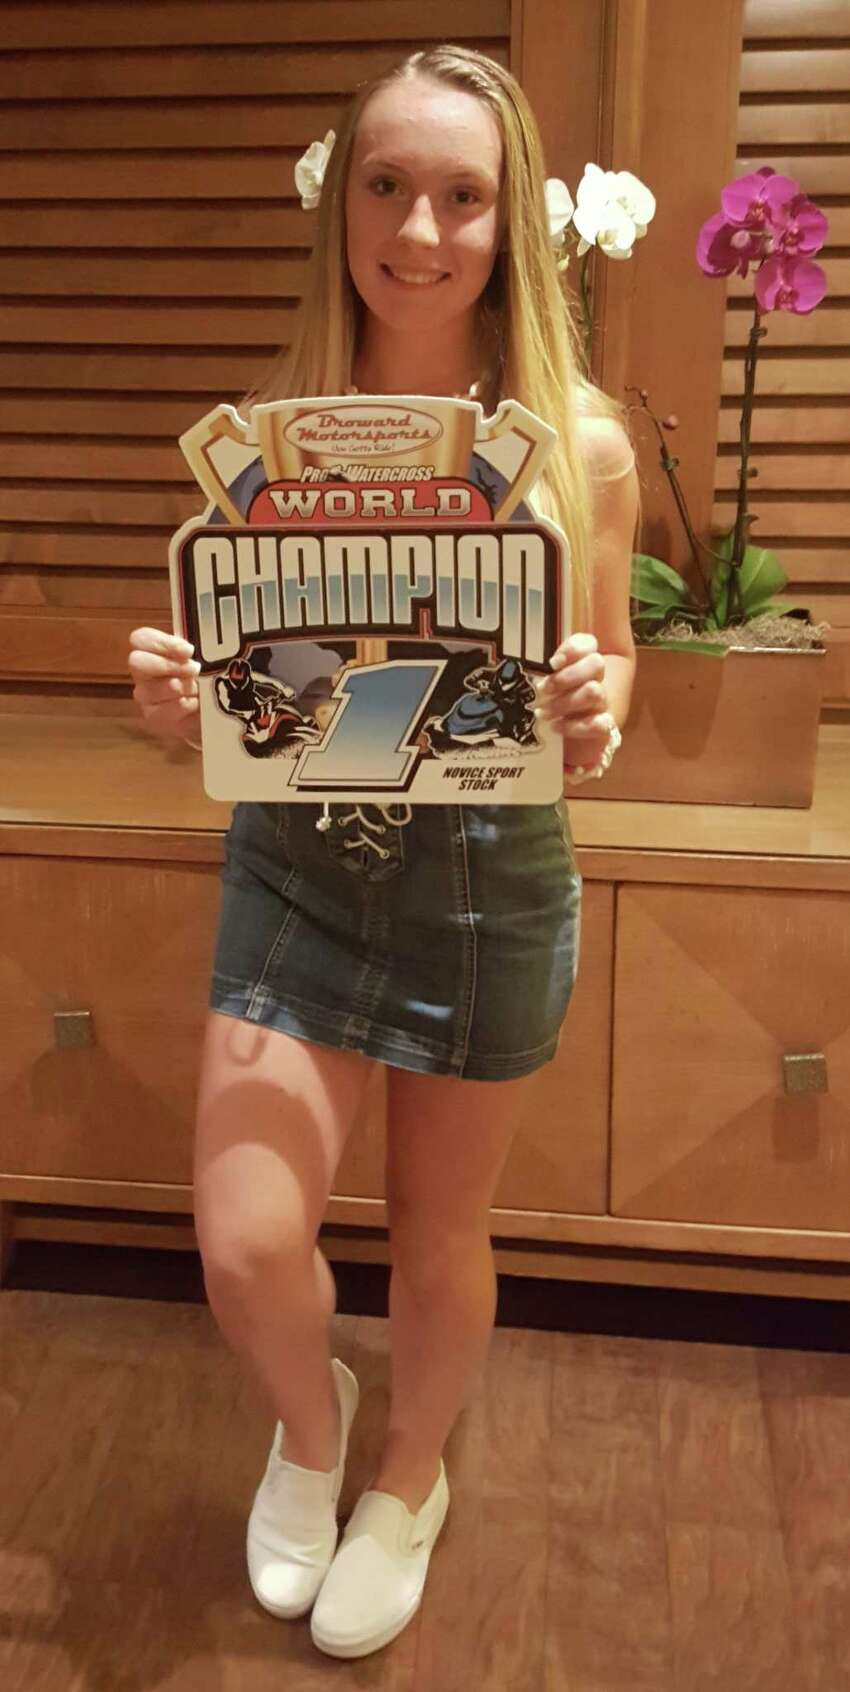 Rylee Grace O'Flaherty, 15, of Rotterdam, captured a jet ski championship in races held Nov. 1-4, 2018, in thePro Watercross World Championship in Naples, Florida. (Photo courtesy Jessica Waters Photography)